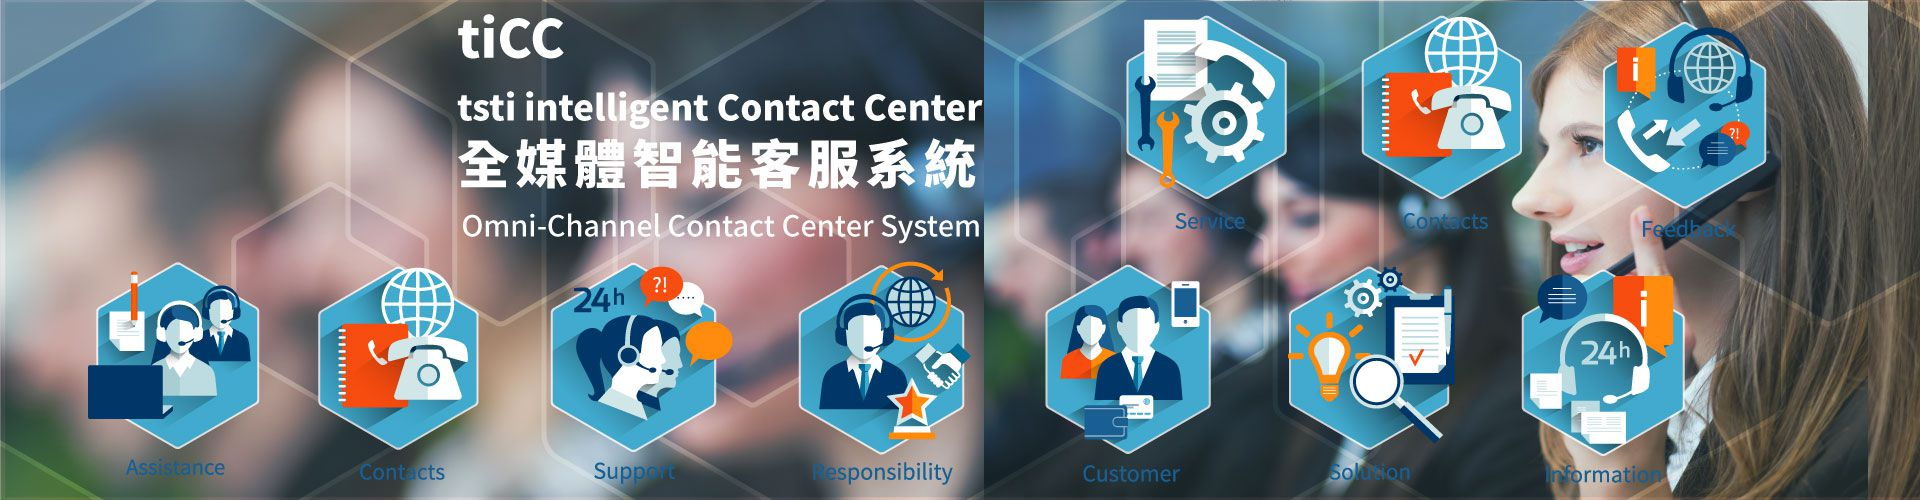 大世科-tiCC - tsti intelligent Contact Center 客服中心系統